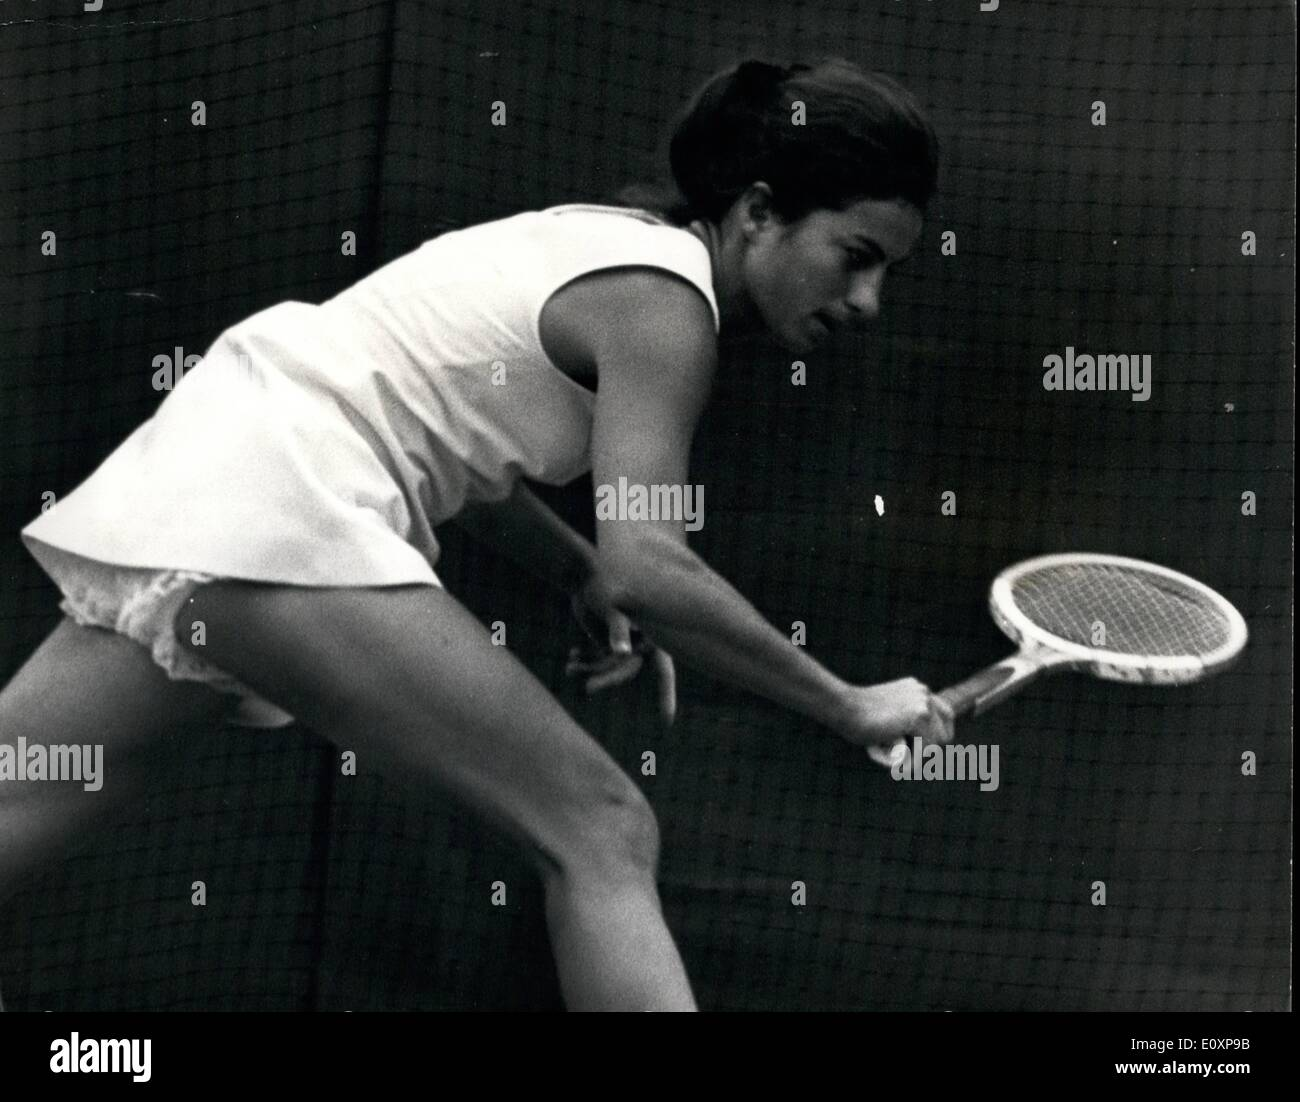 Jul 07 1967 TENNIS AT WIMBLEDON VIRGINIA WADE IS BEATEN Stock